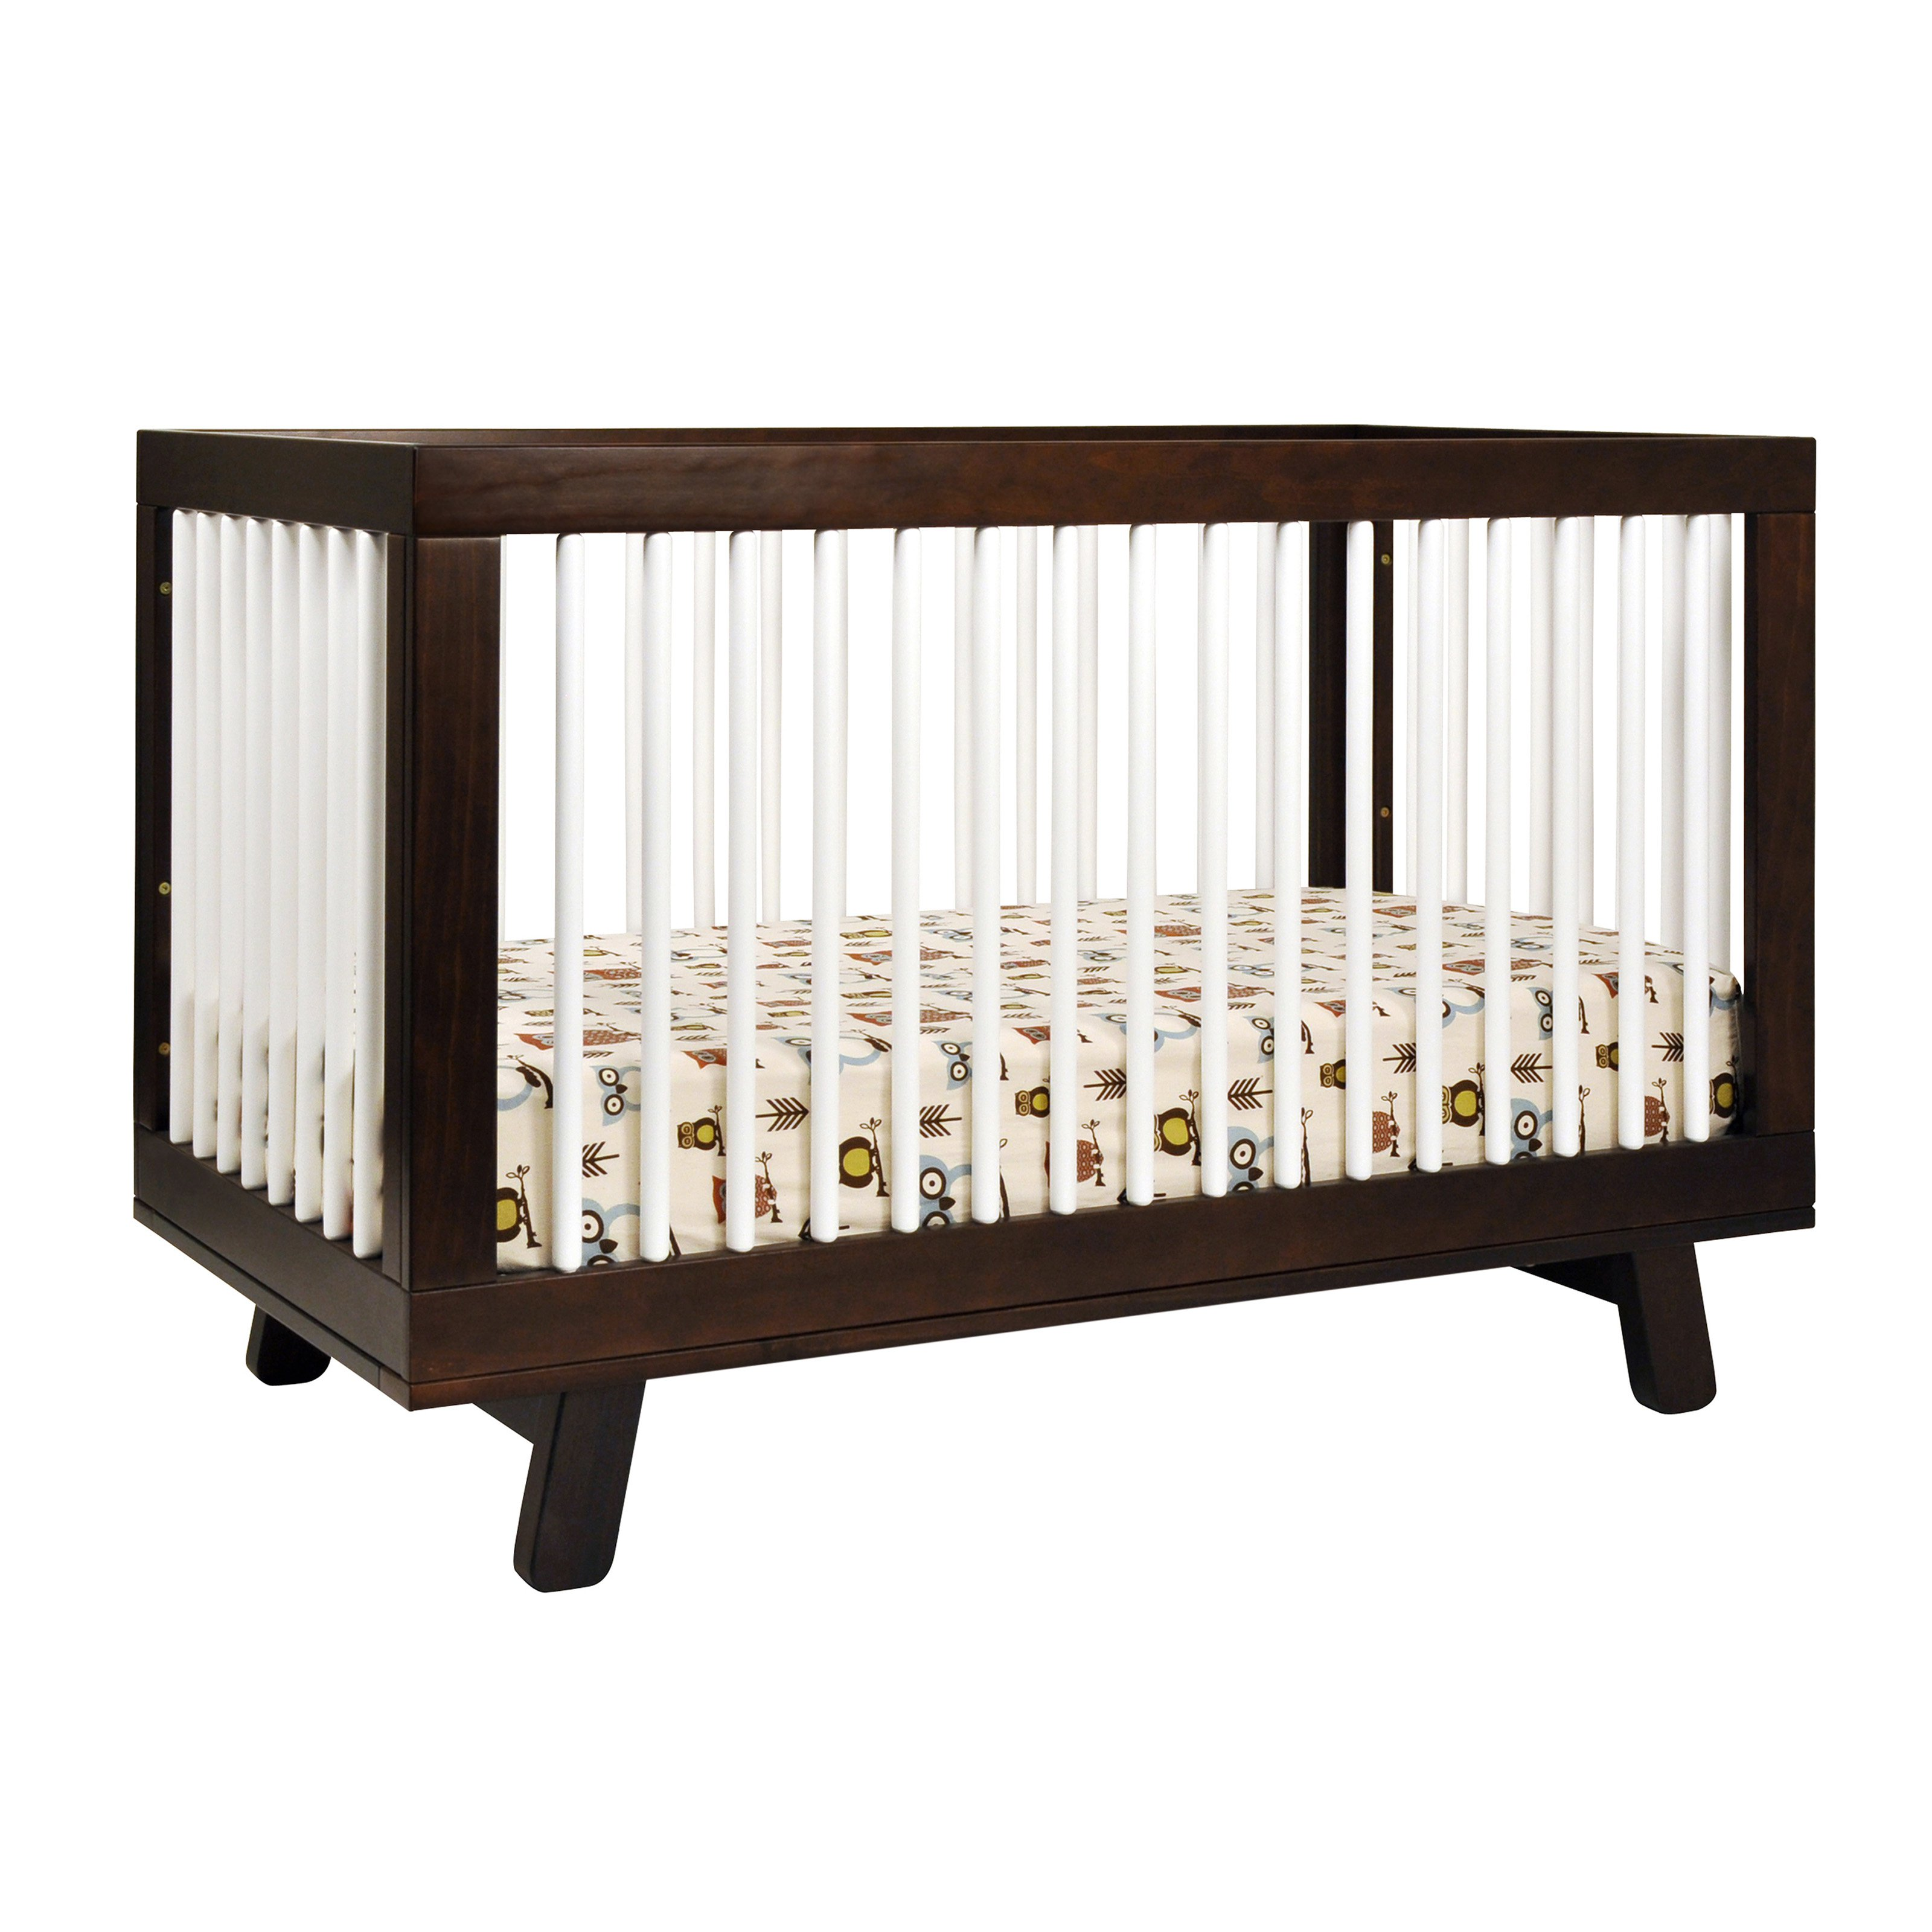 Babyletto Hudson 3-in-1 Convertible Crib with Toddler Rail, Espresso/White